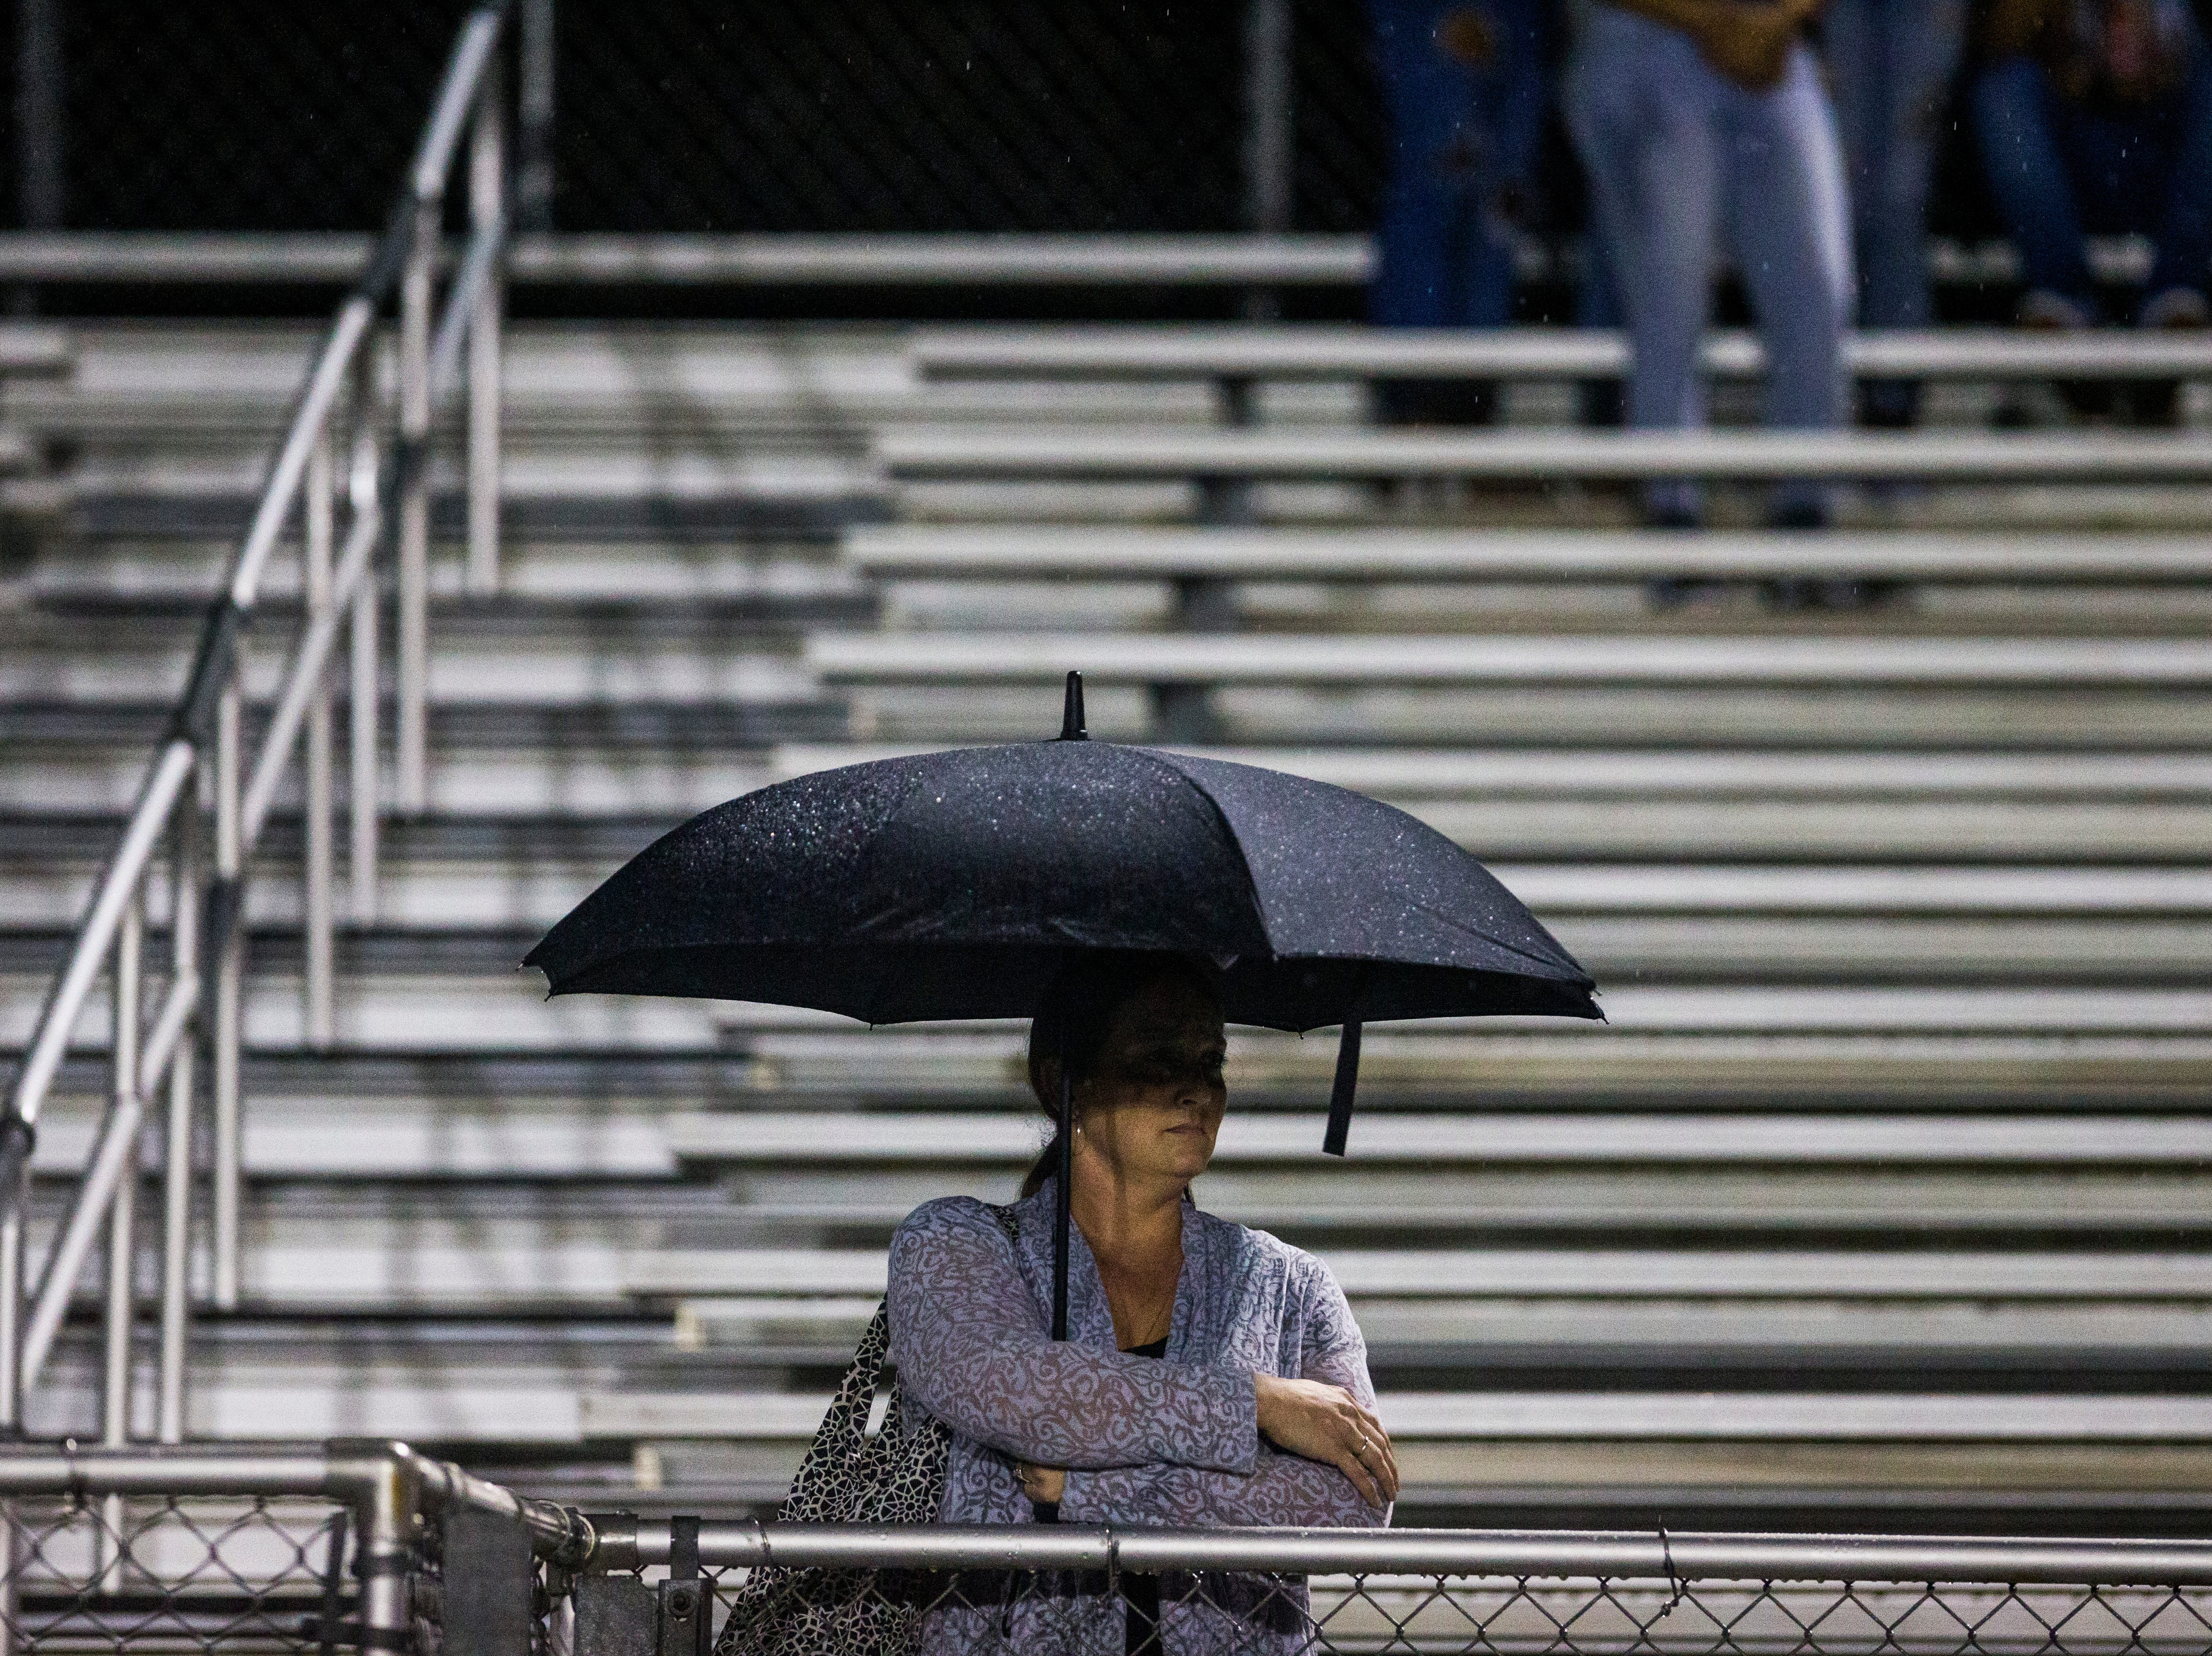 Spectators watch from the bleachers in the rain during the game against Immokalee at Golden Gate High School on Friday, Aug. 24, 2018.